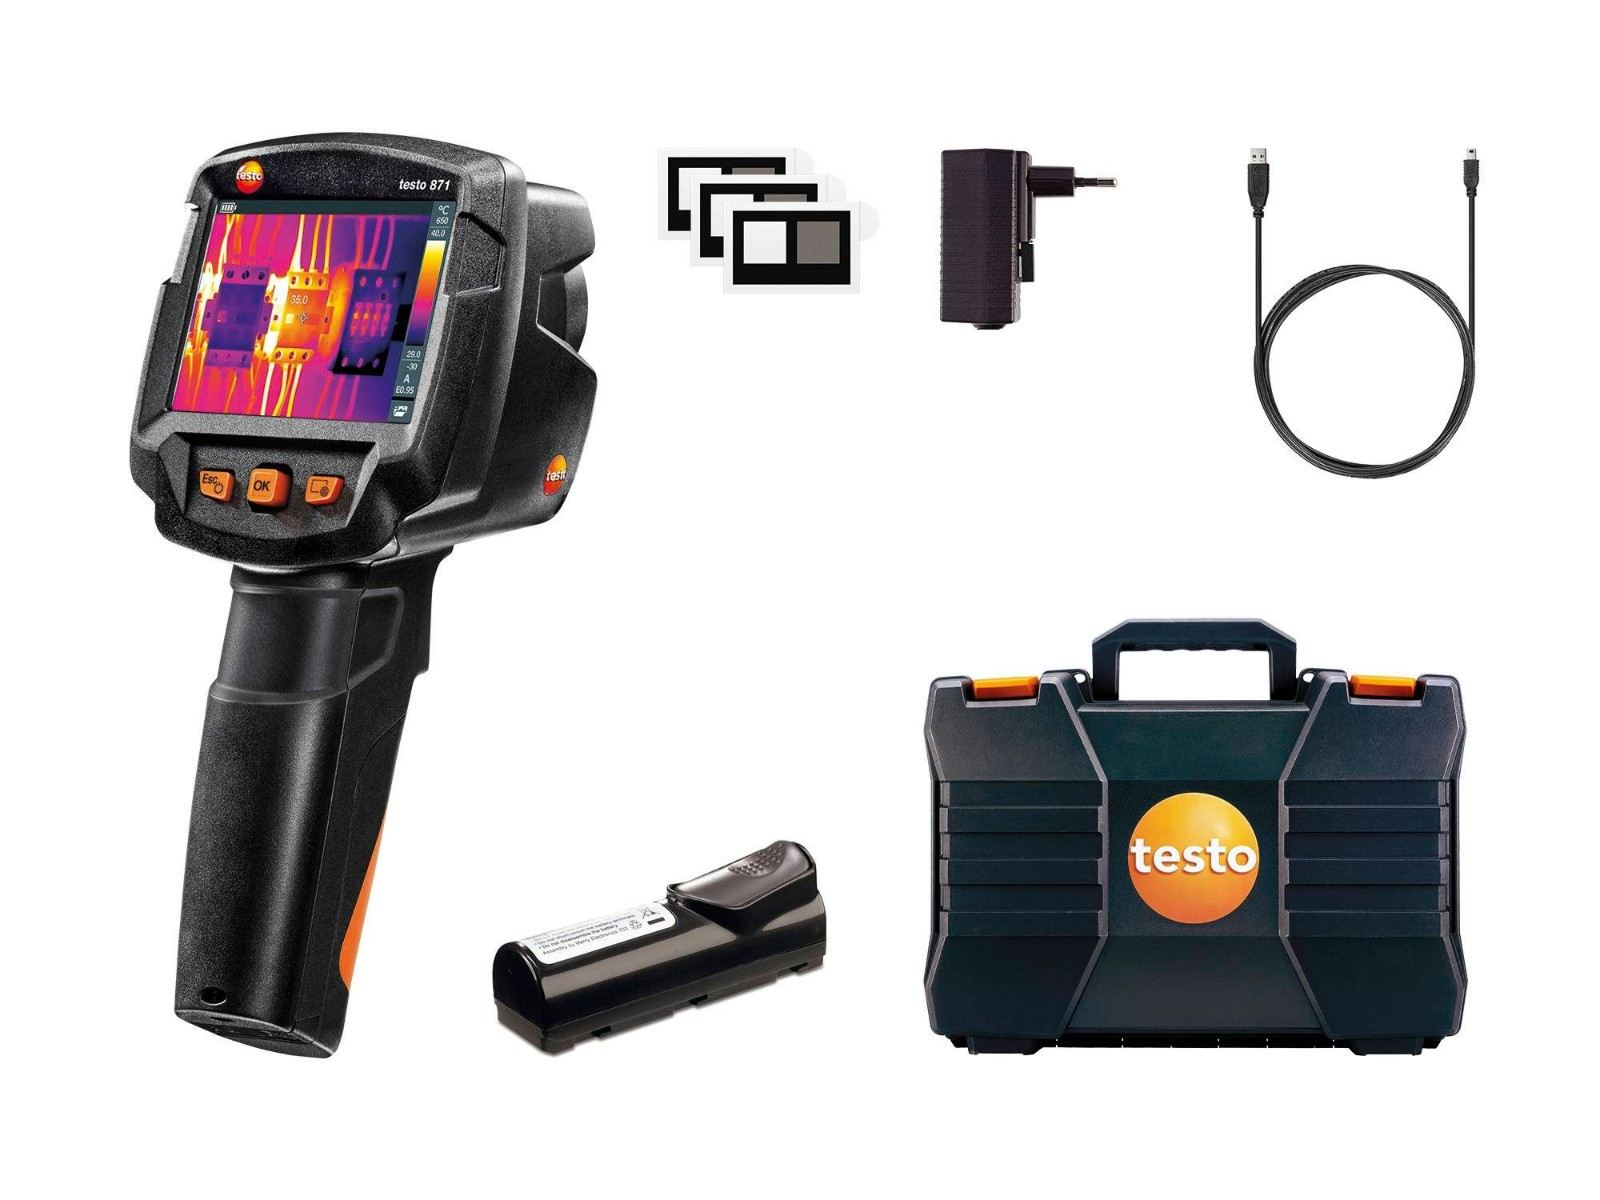 Testo-871 Thermal Imager with App